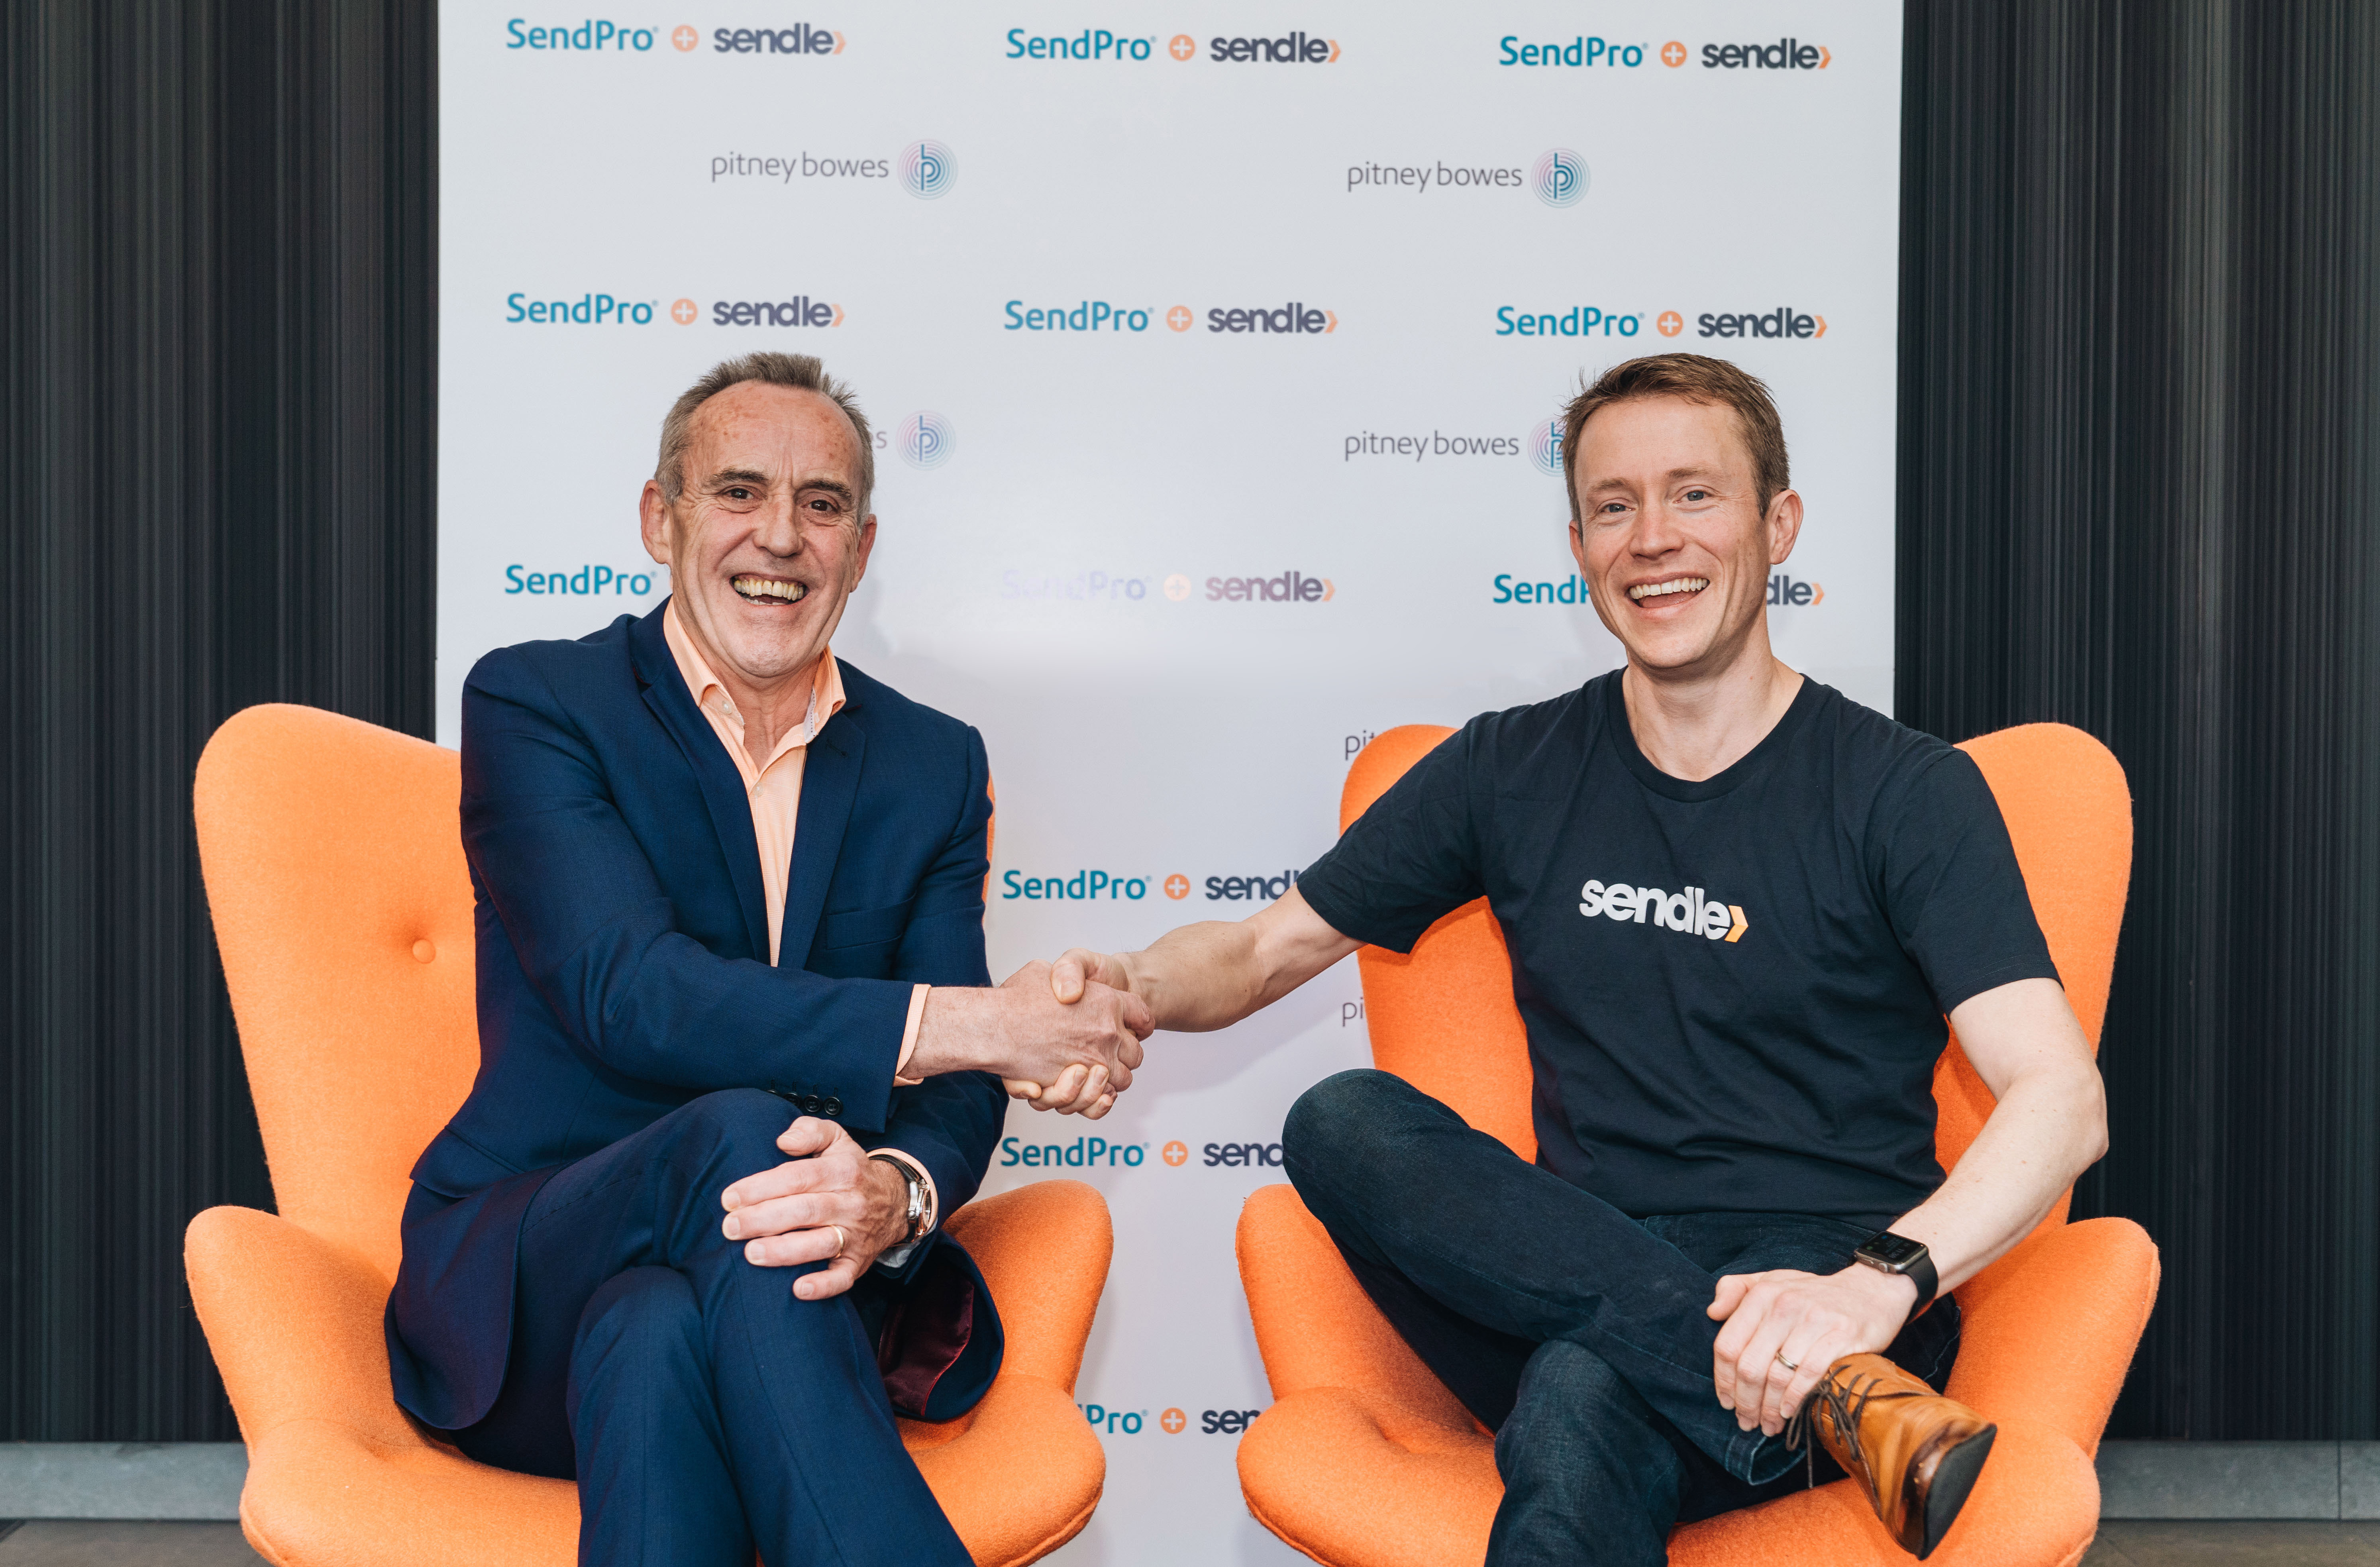 509a6d15b Pitney Bowes Partners with Sendle to Reinvent Office Shipping and Mailing  with SendPro